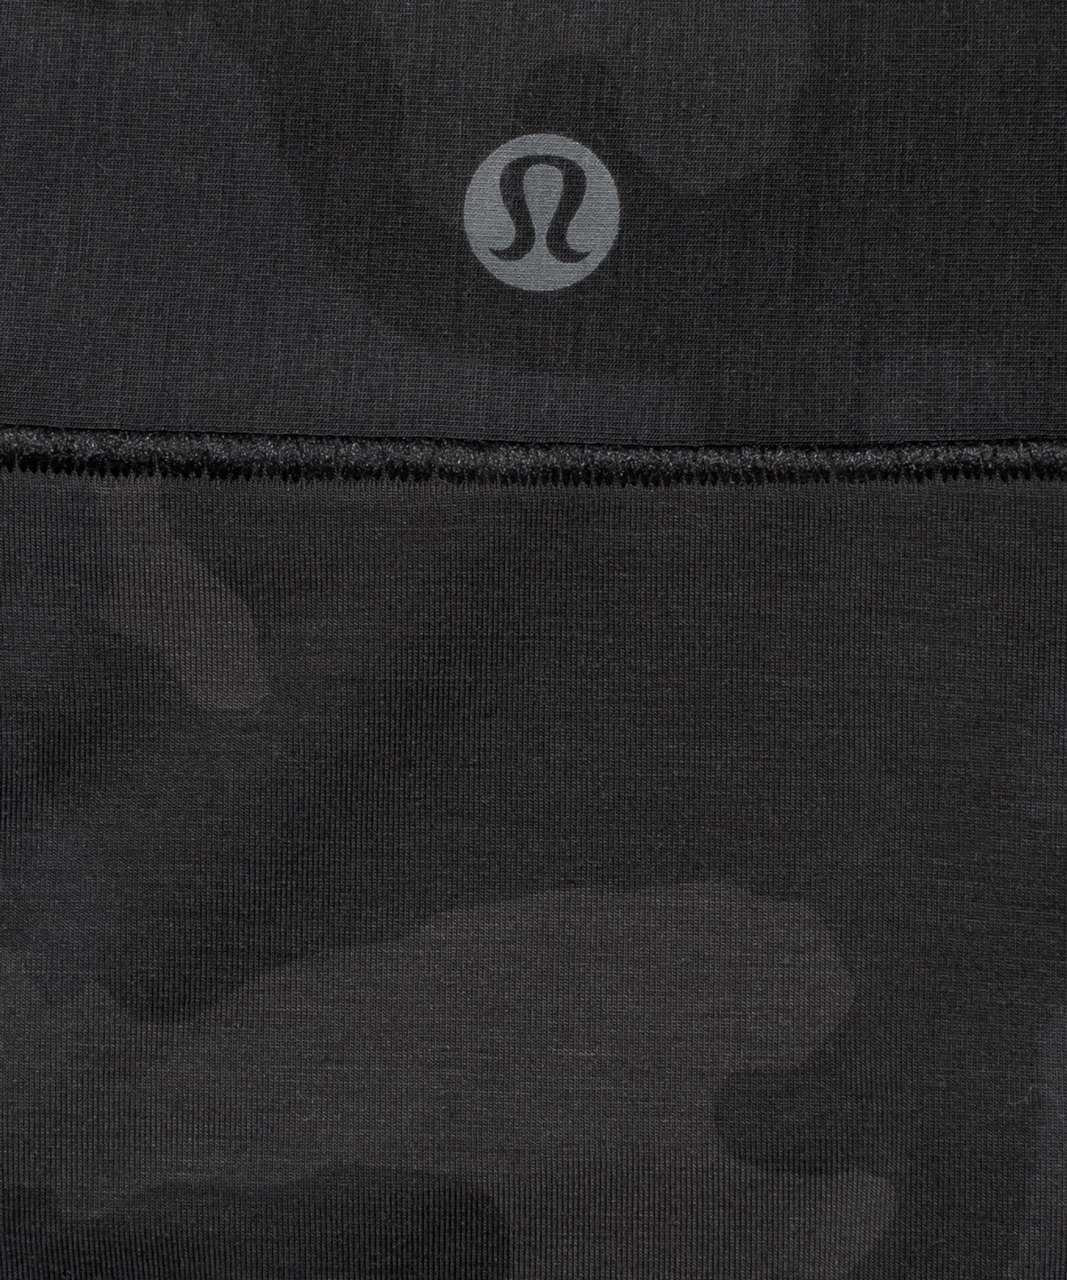 Lululemon UnderEase Mid Rise Hipster Underwear - Incognito Camo Multi Grey